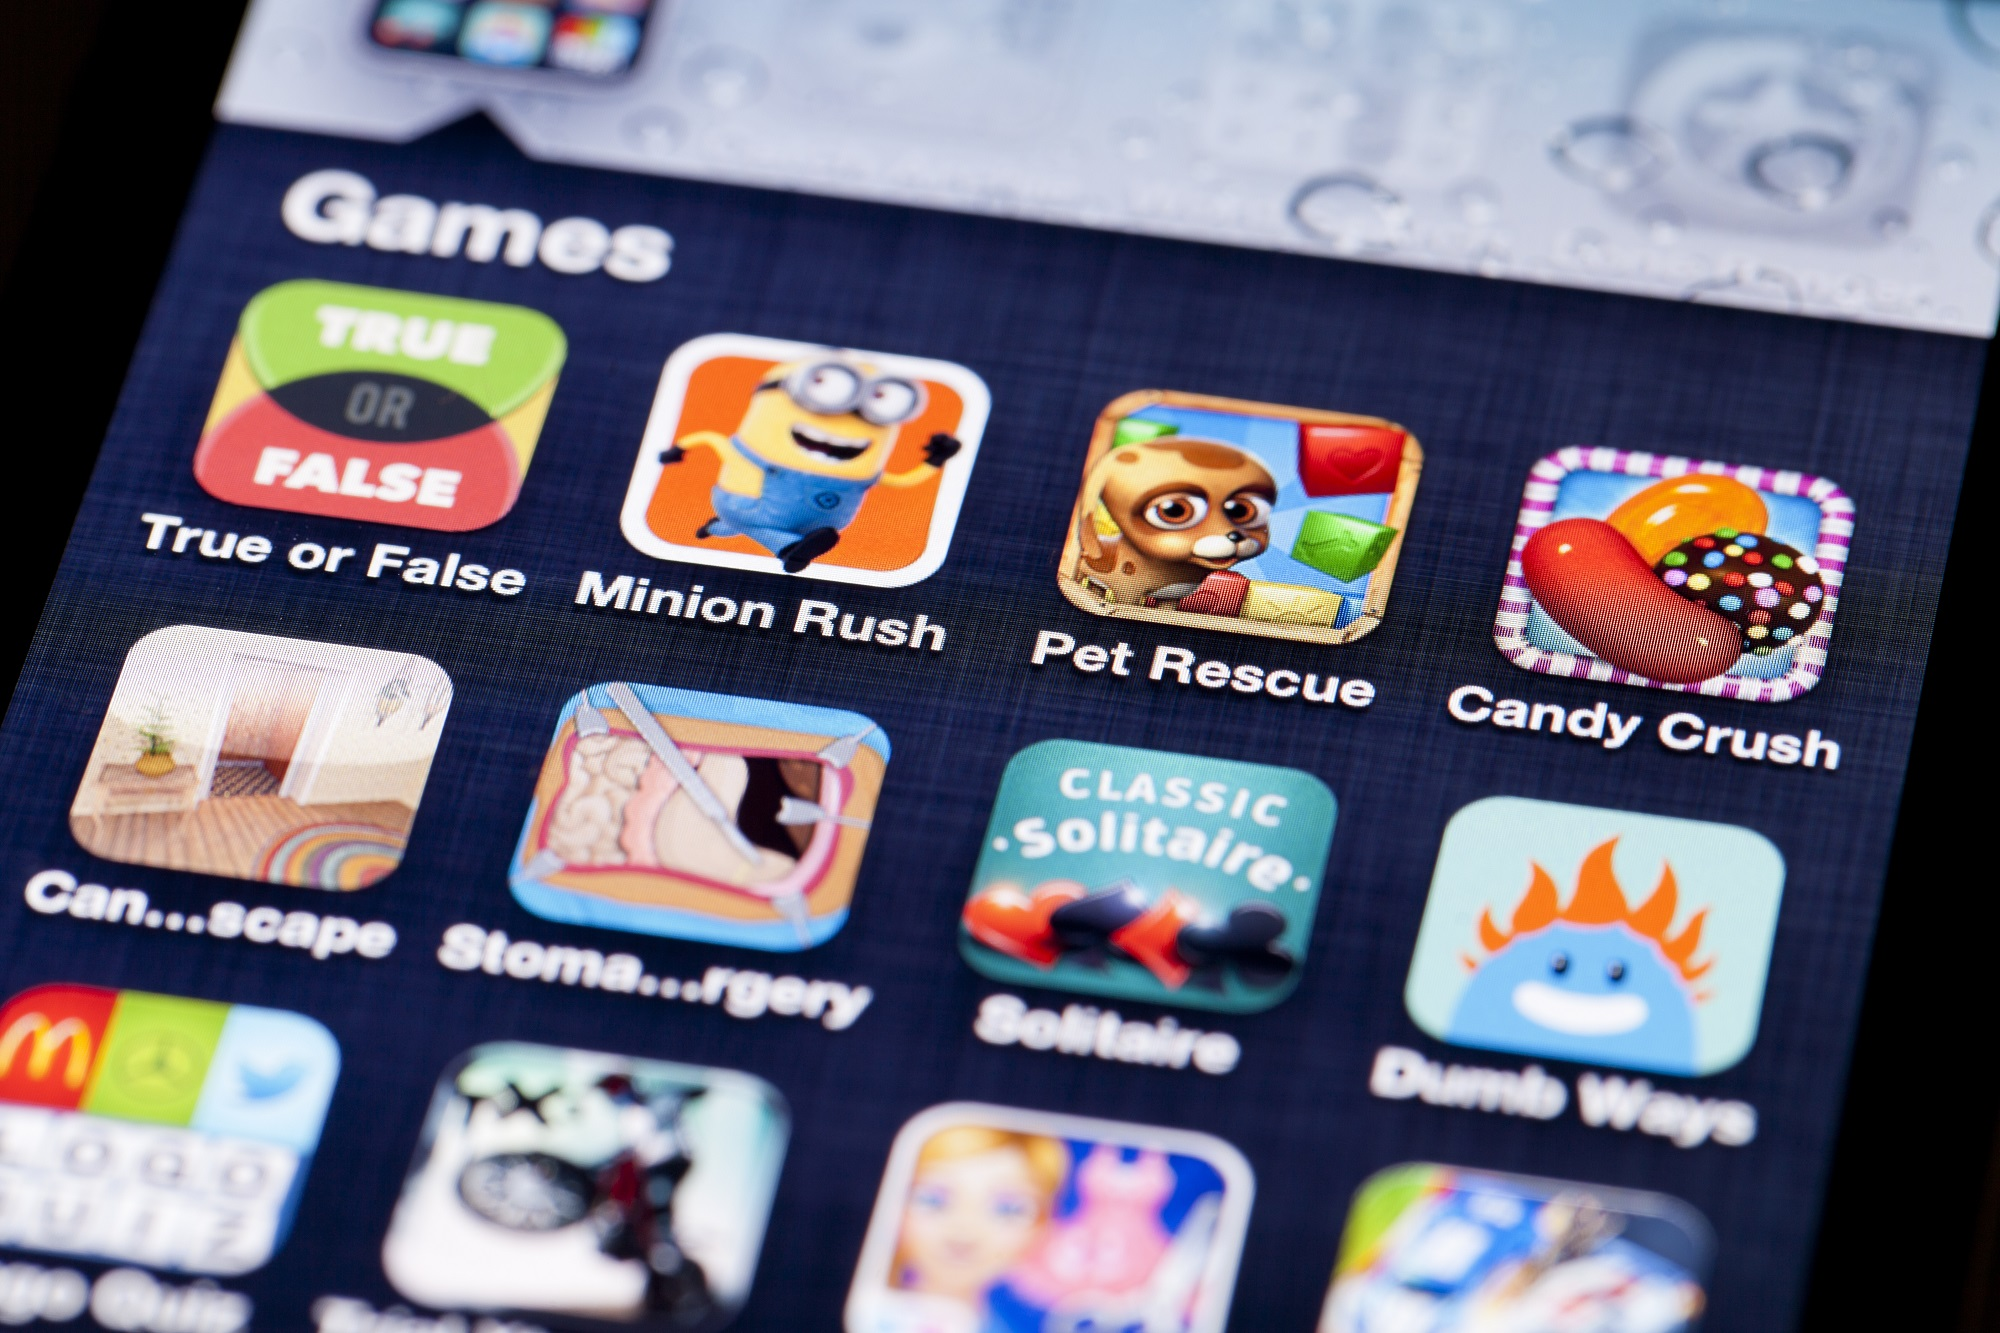 15 Best iPhone Games to Play with Friends in 2020 - ESR Blog